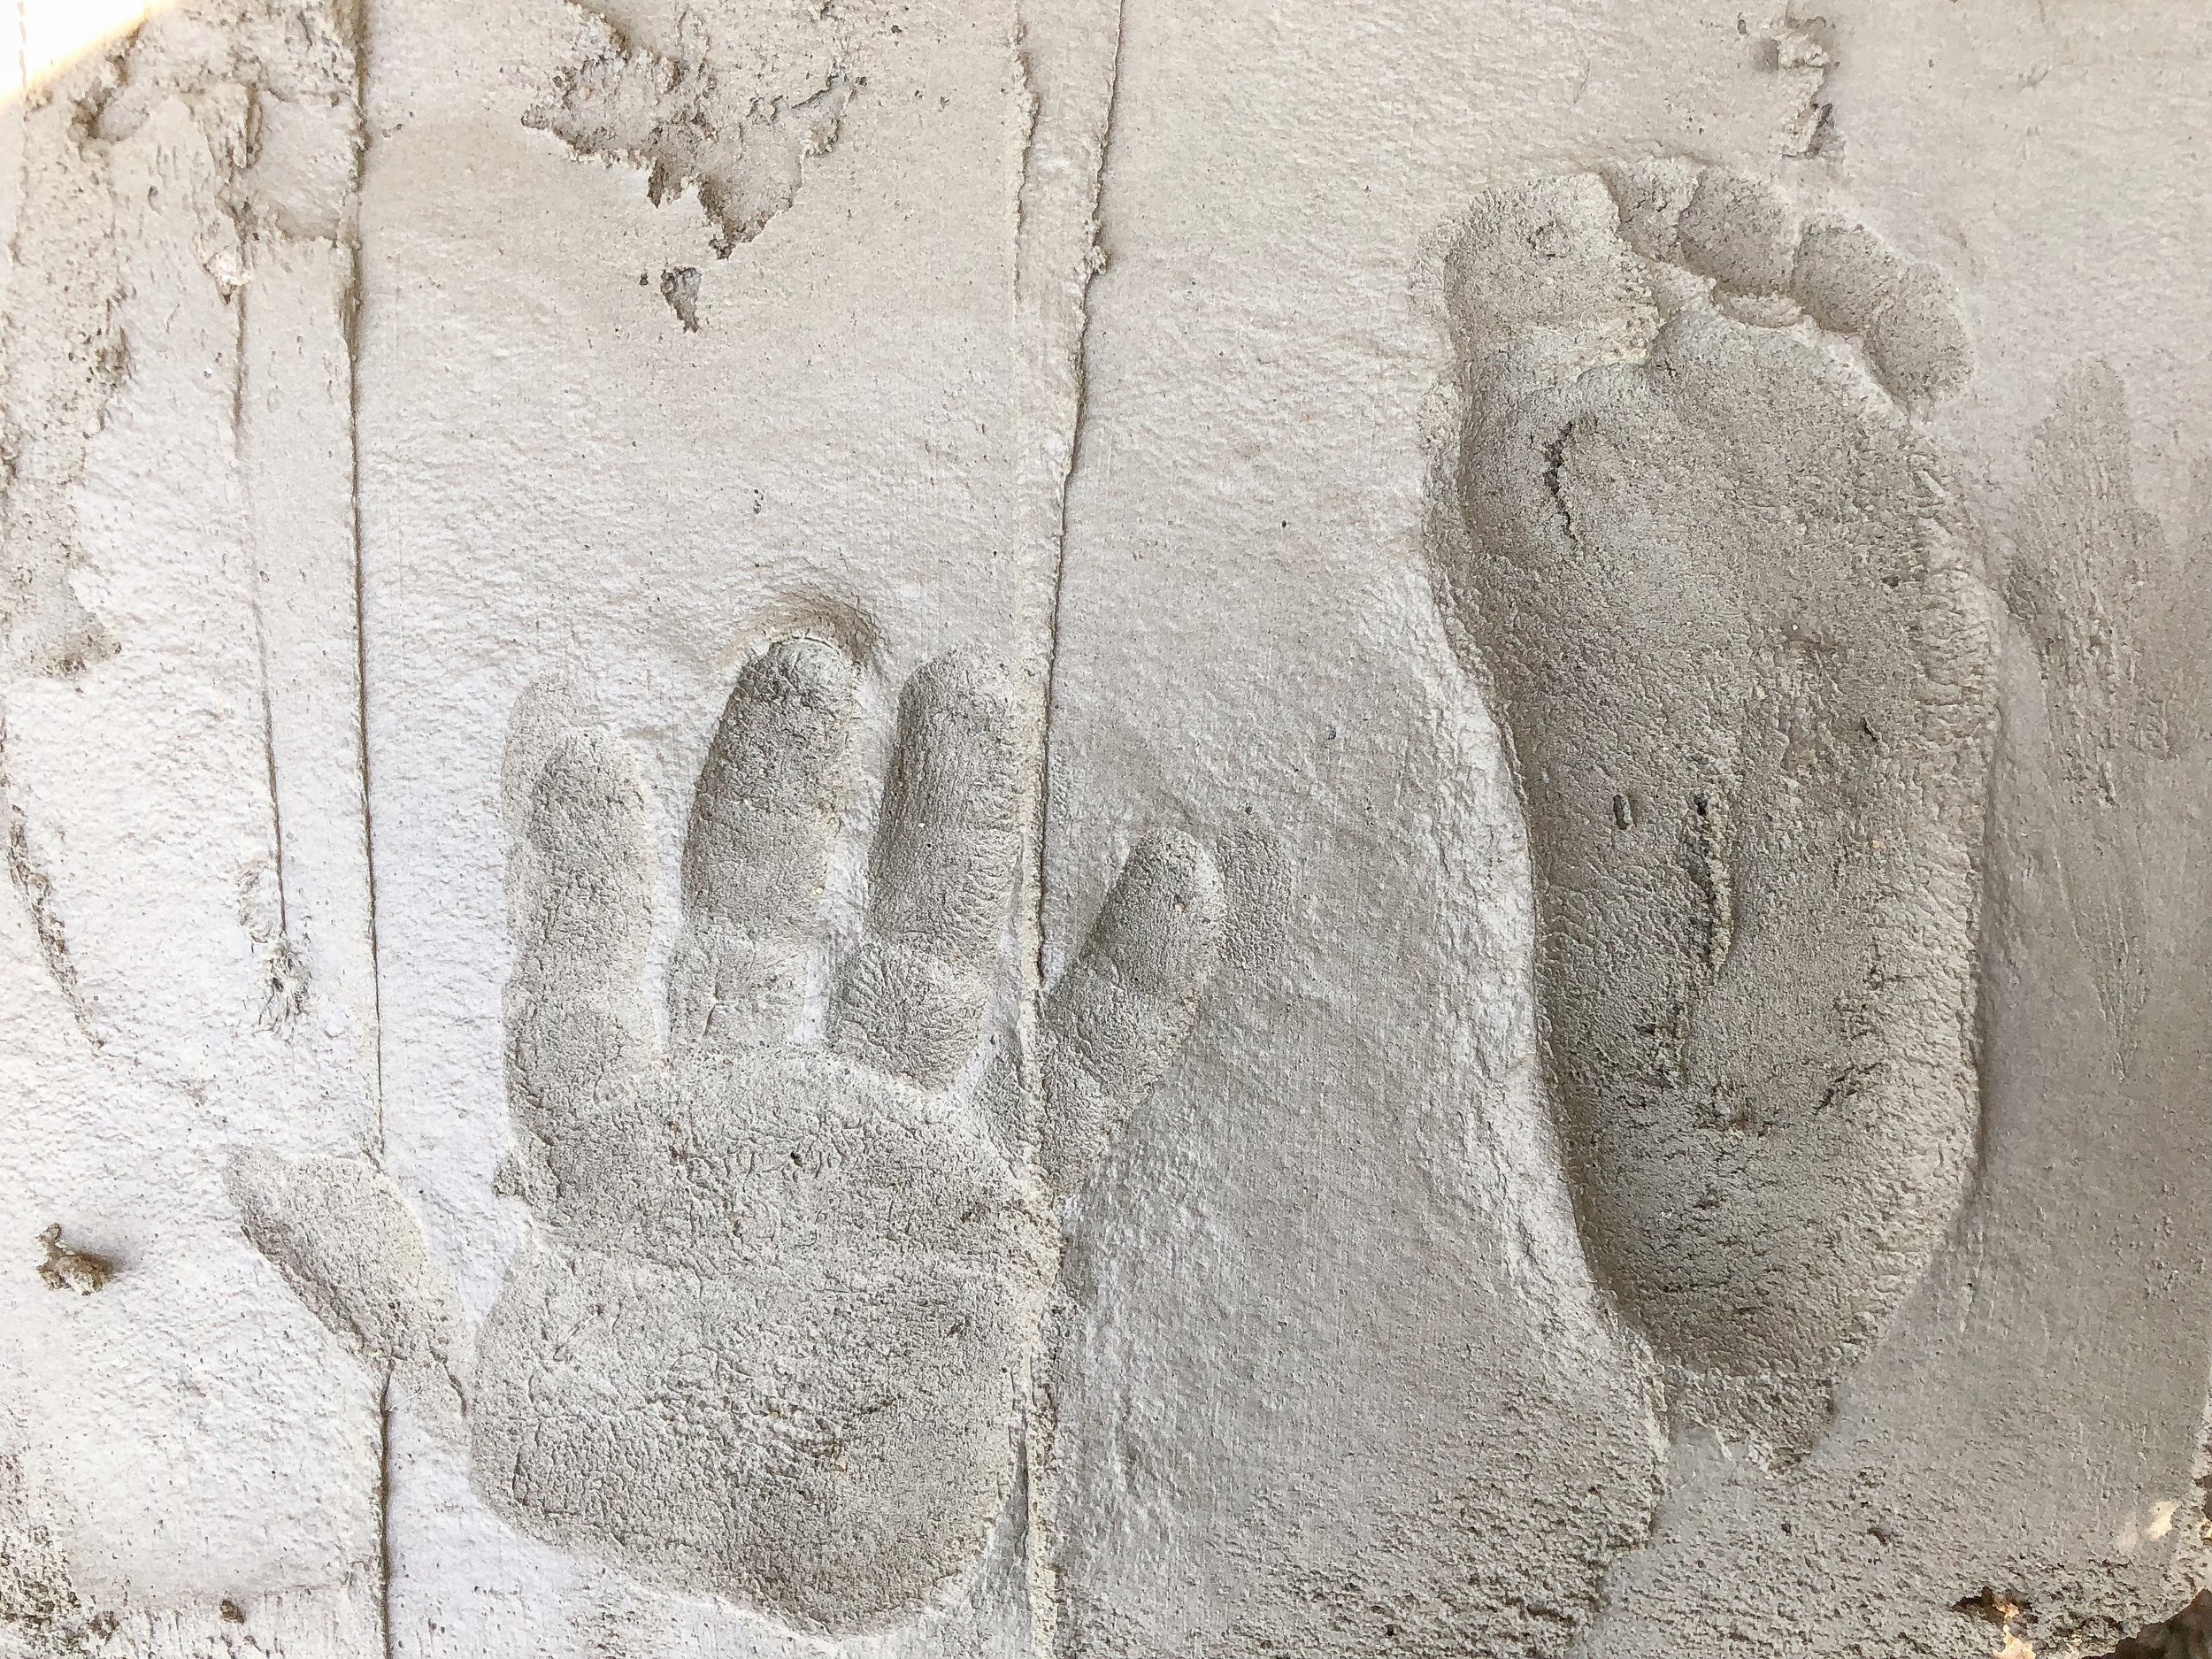 Dominic's hand and foot prints